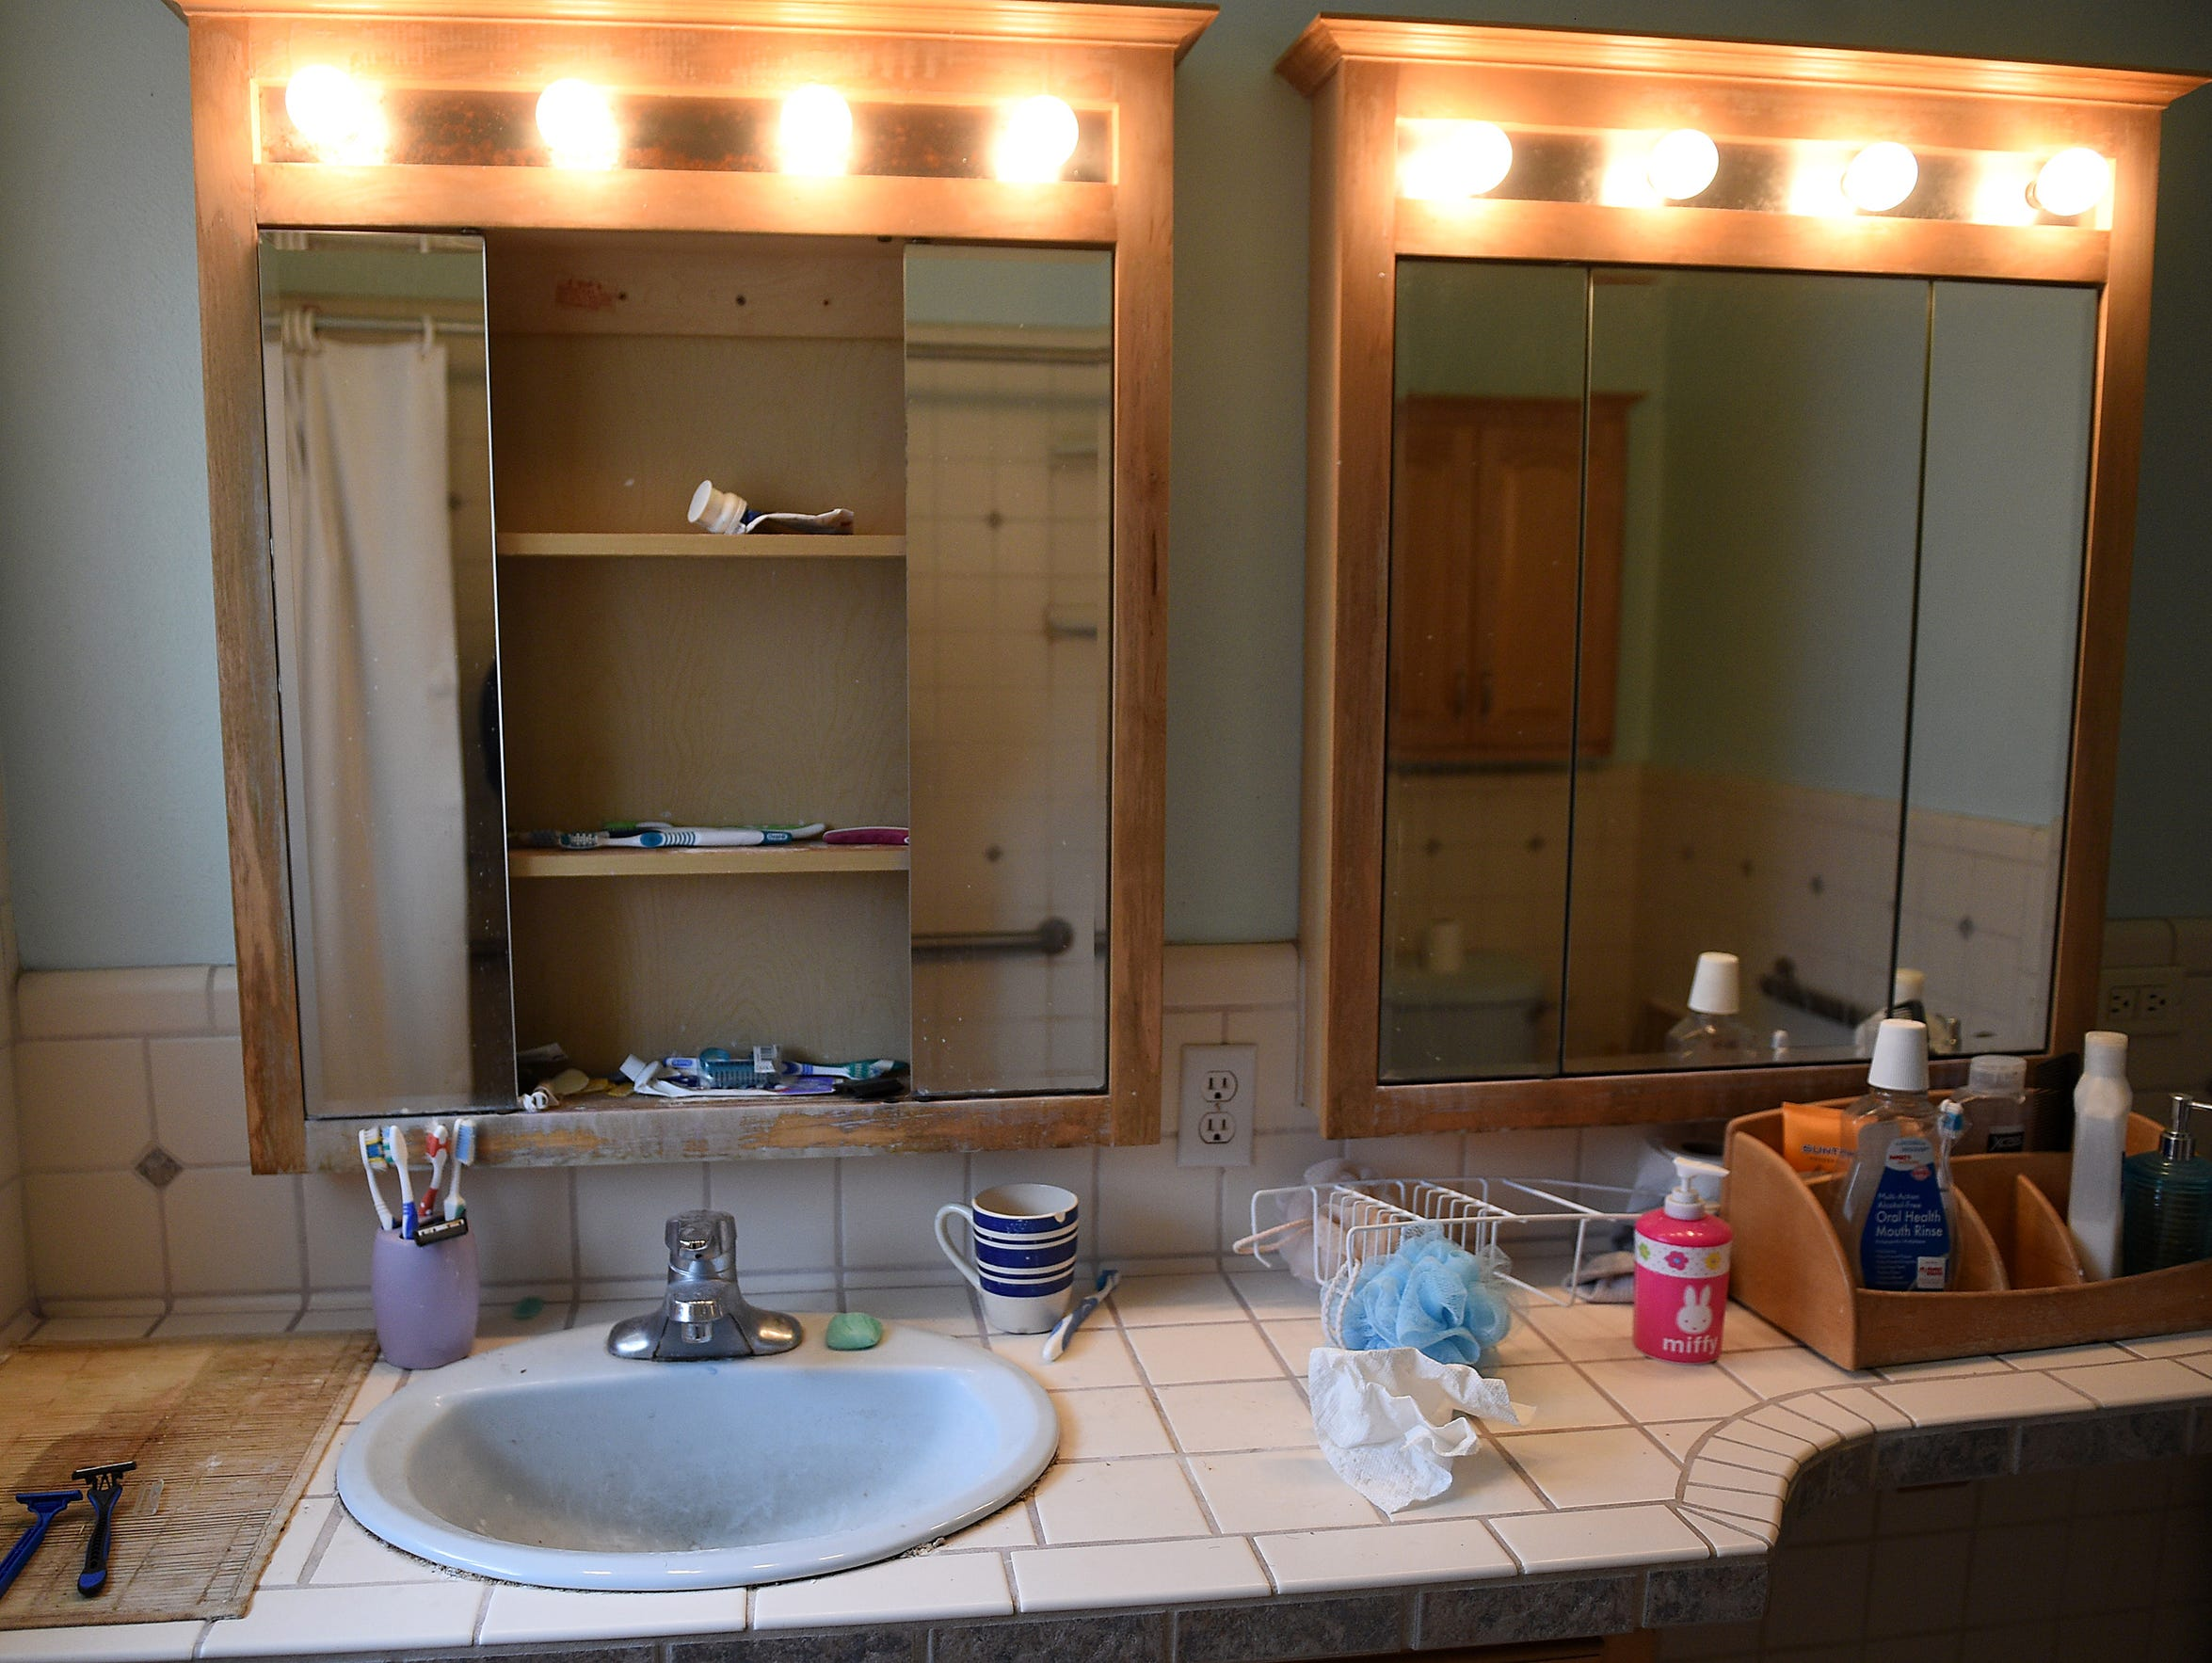 A bathroom in a group home for mentally ill state clients,